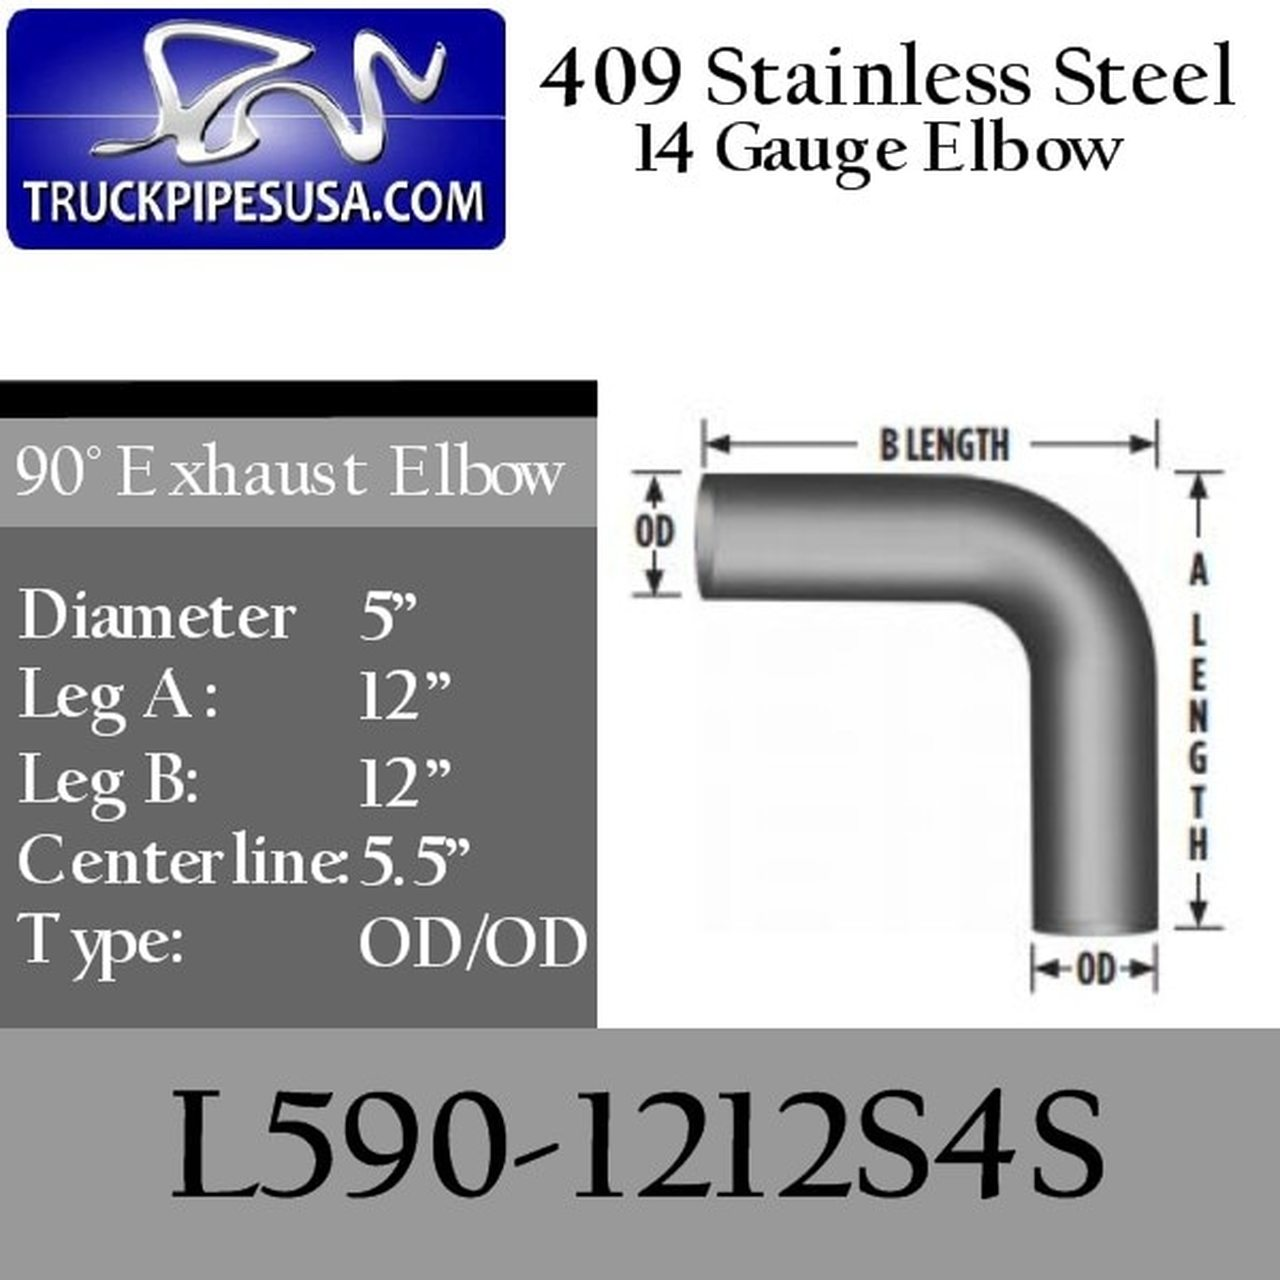 l590 1212s4s 90 degree 409 stainless steel exhaust elbow 5 inch round tube 12 inch legs od od tubing for big rig trucks